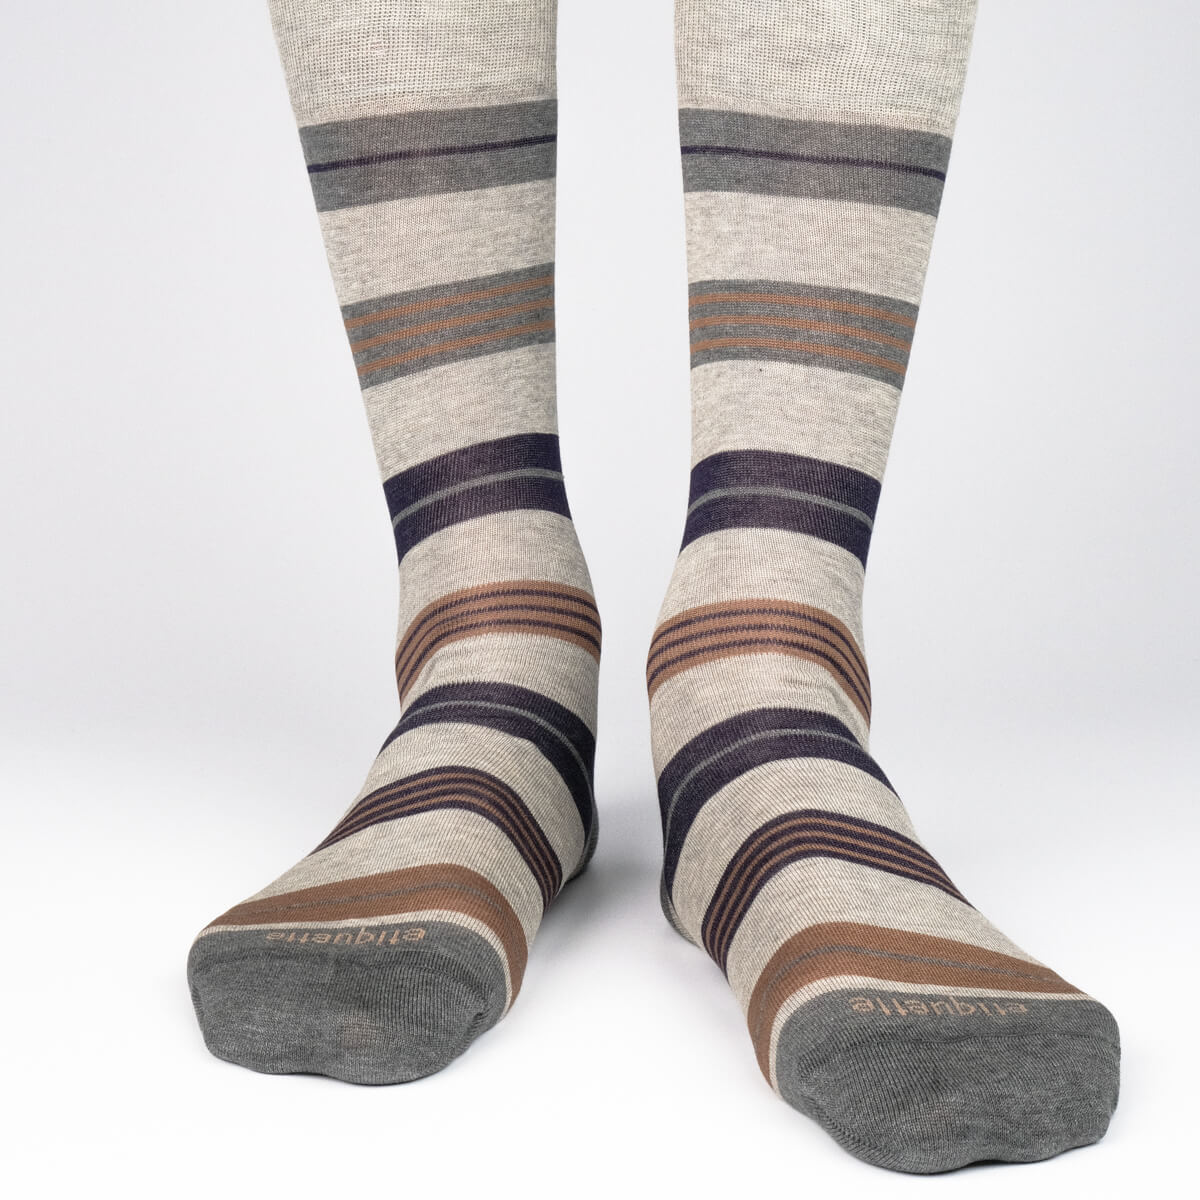 Mens Socks - Amsterdam Stripes Men's Socks - Grey⎪Etiquette Clothiers